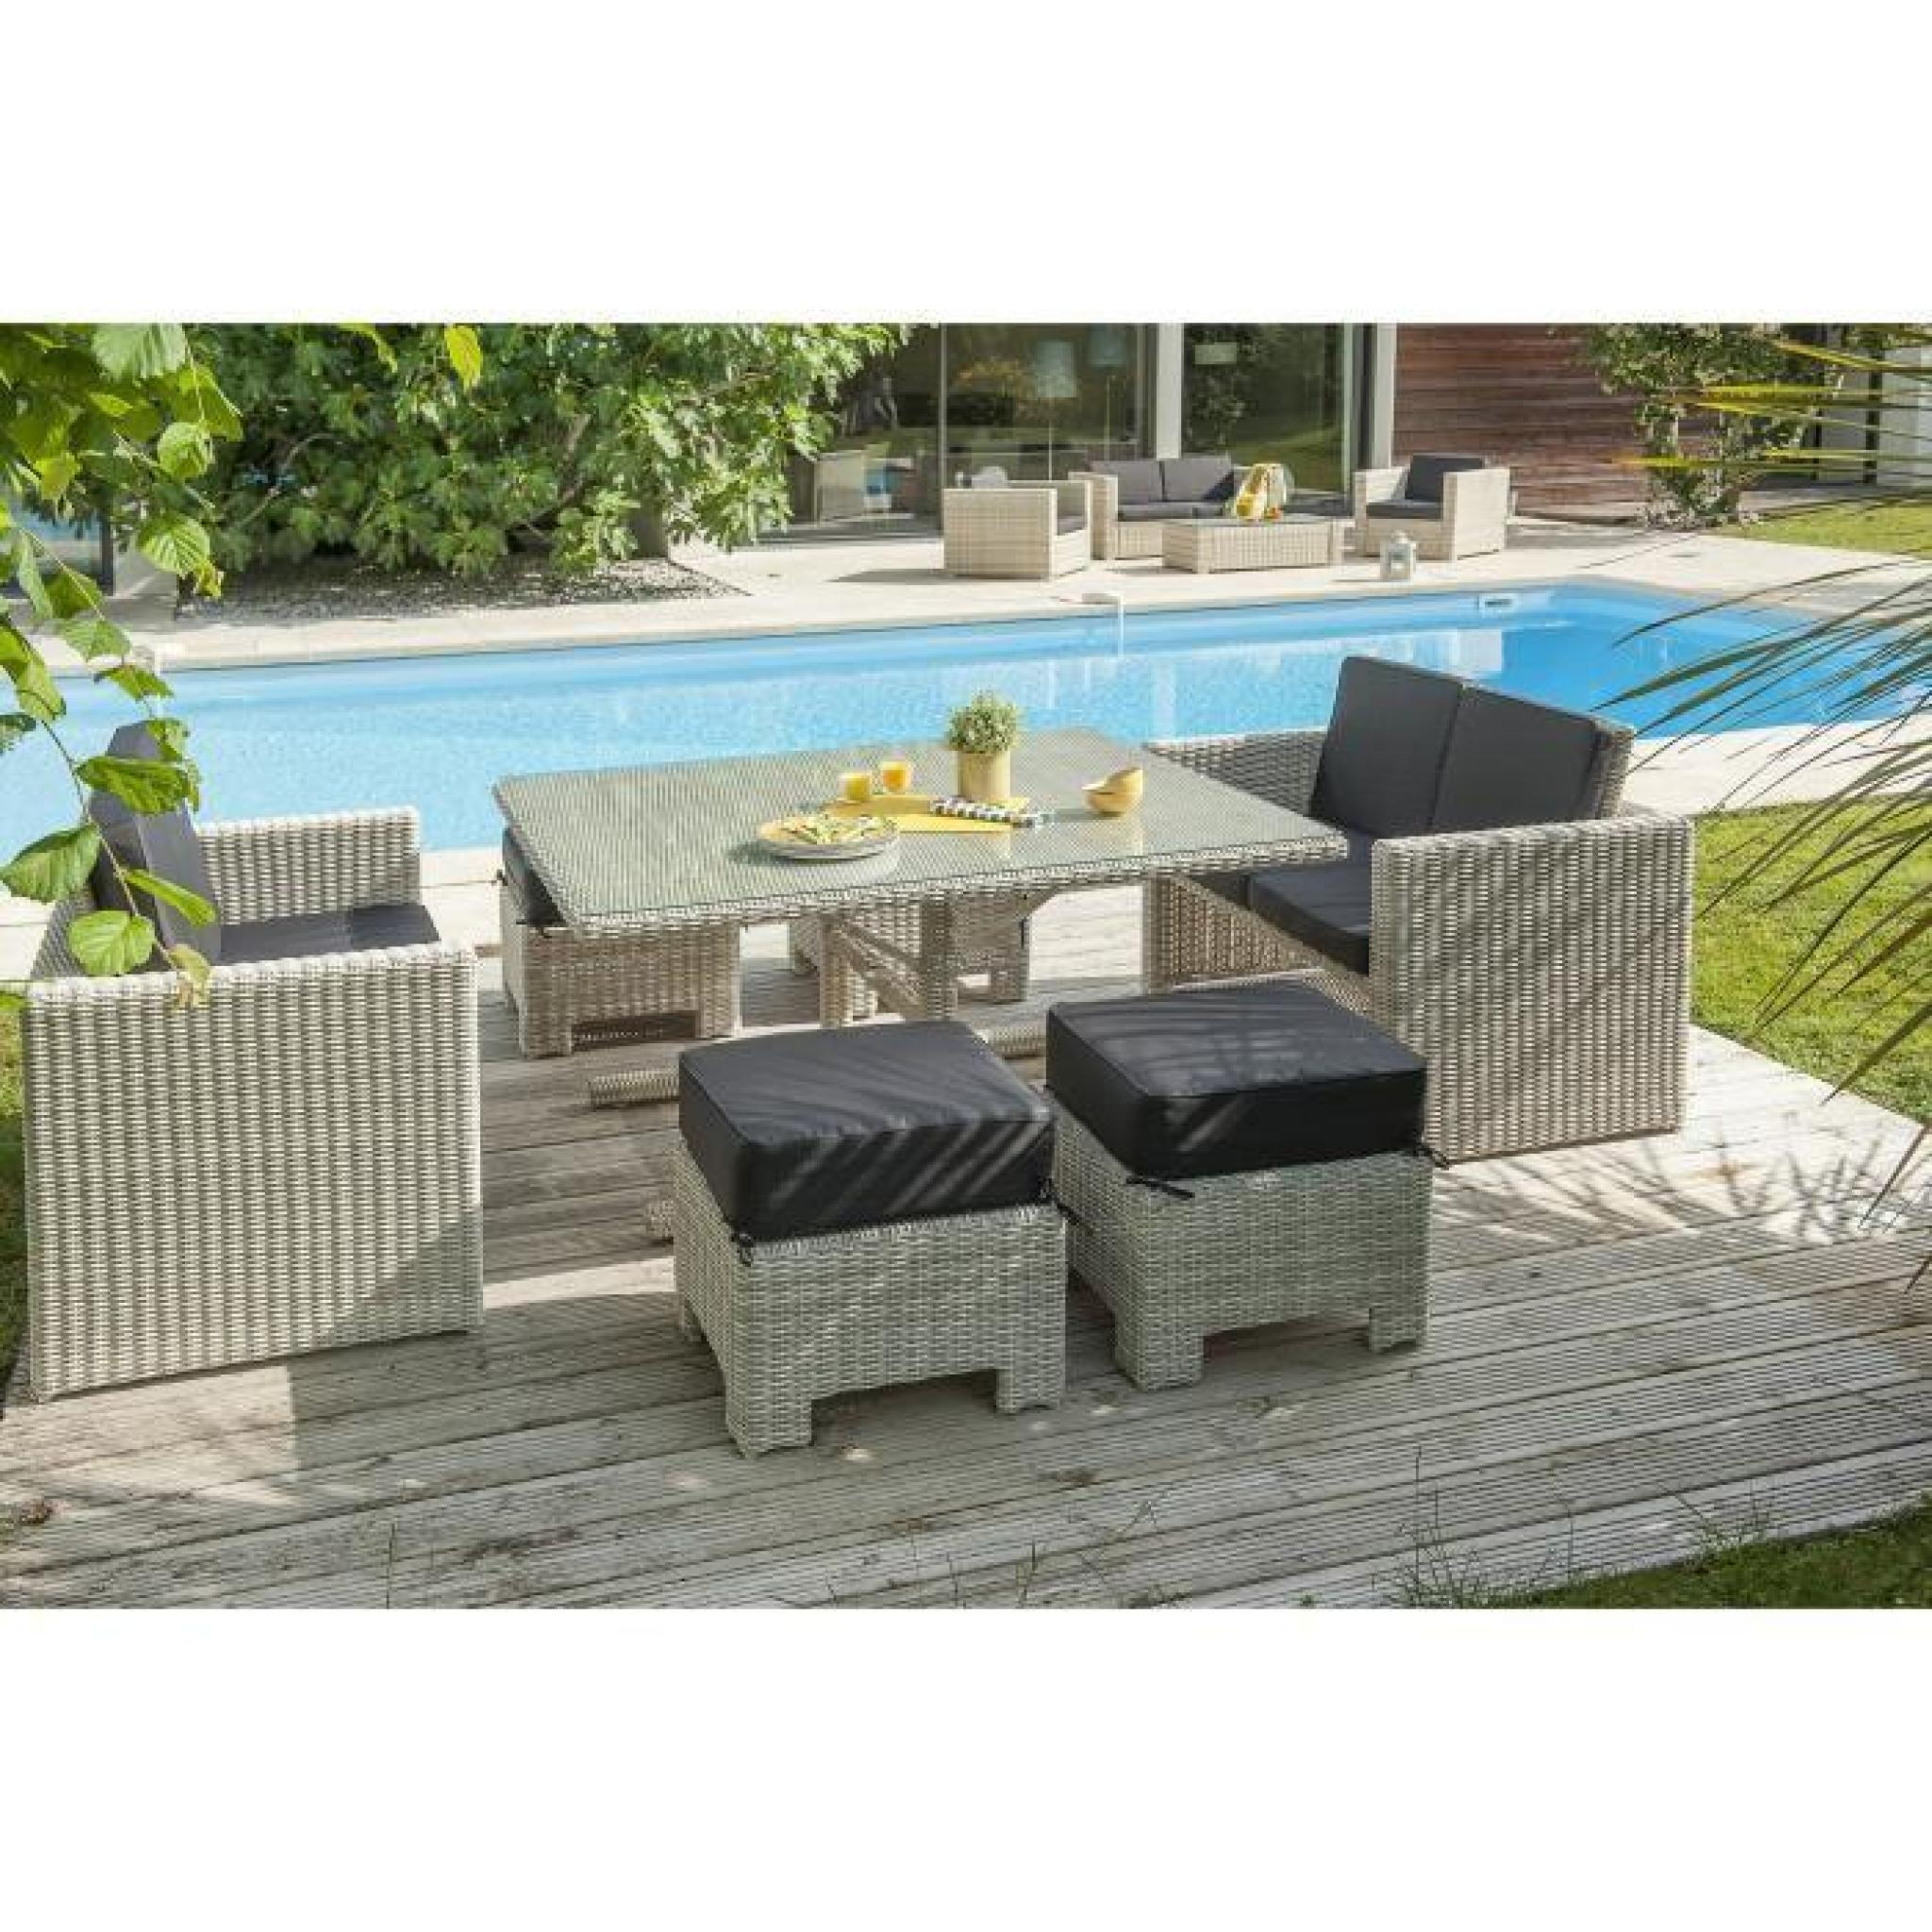 paris garden ensemble repas de jardin encastrable oceane 1 table 2 banquettes et 4 poufs en. Black Bedroom Furniture Sets. Home Design Ideas